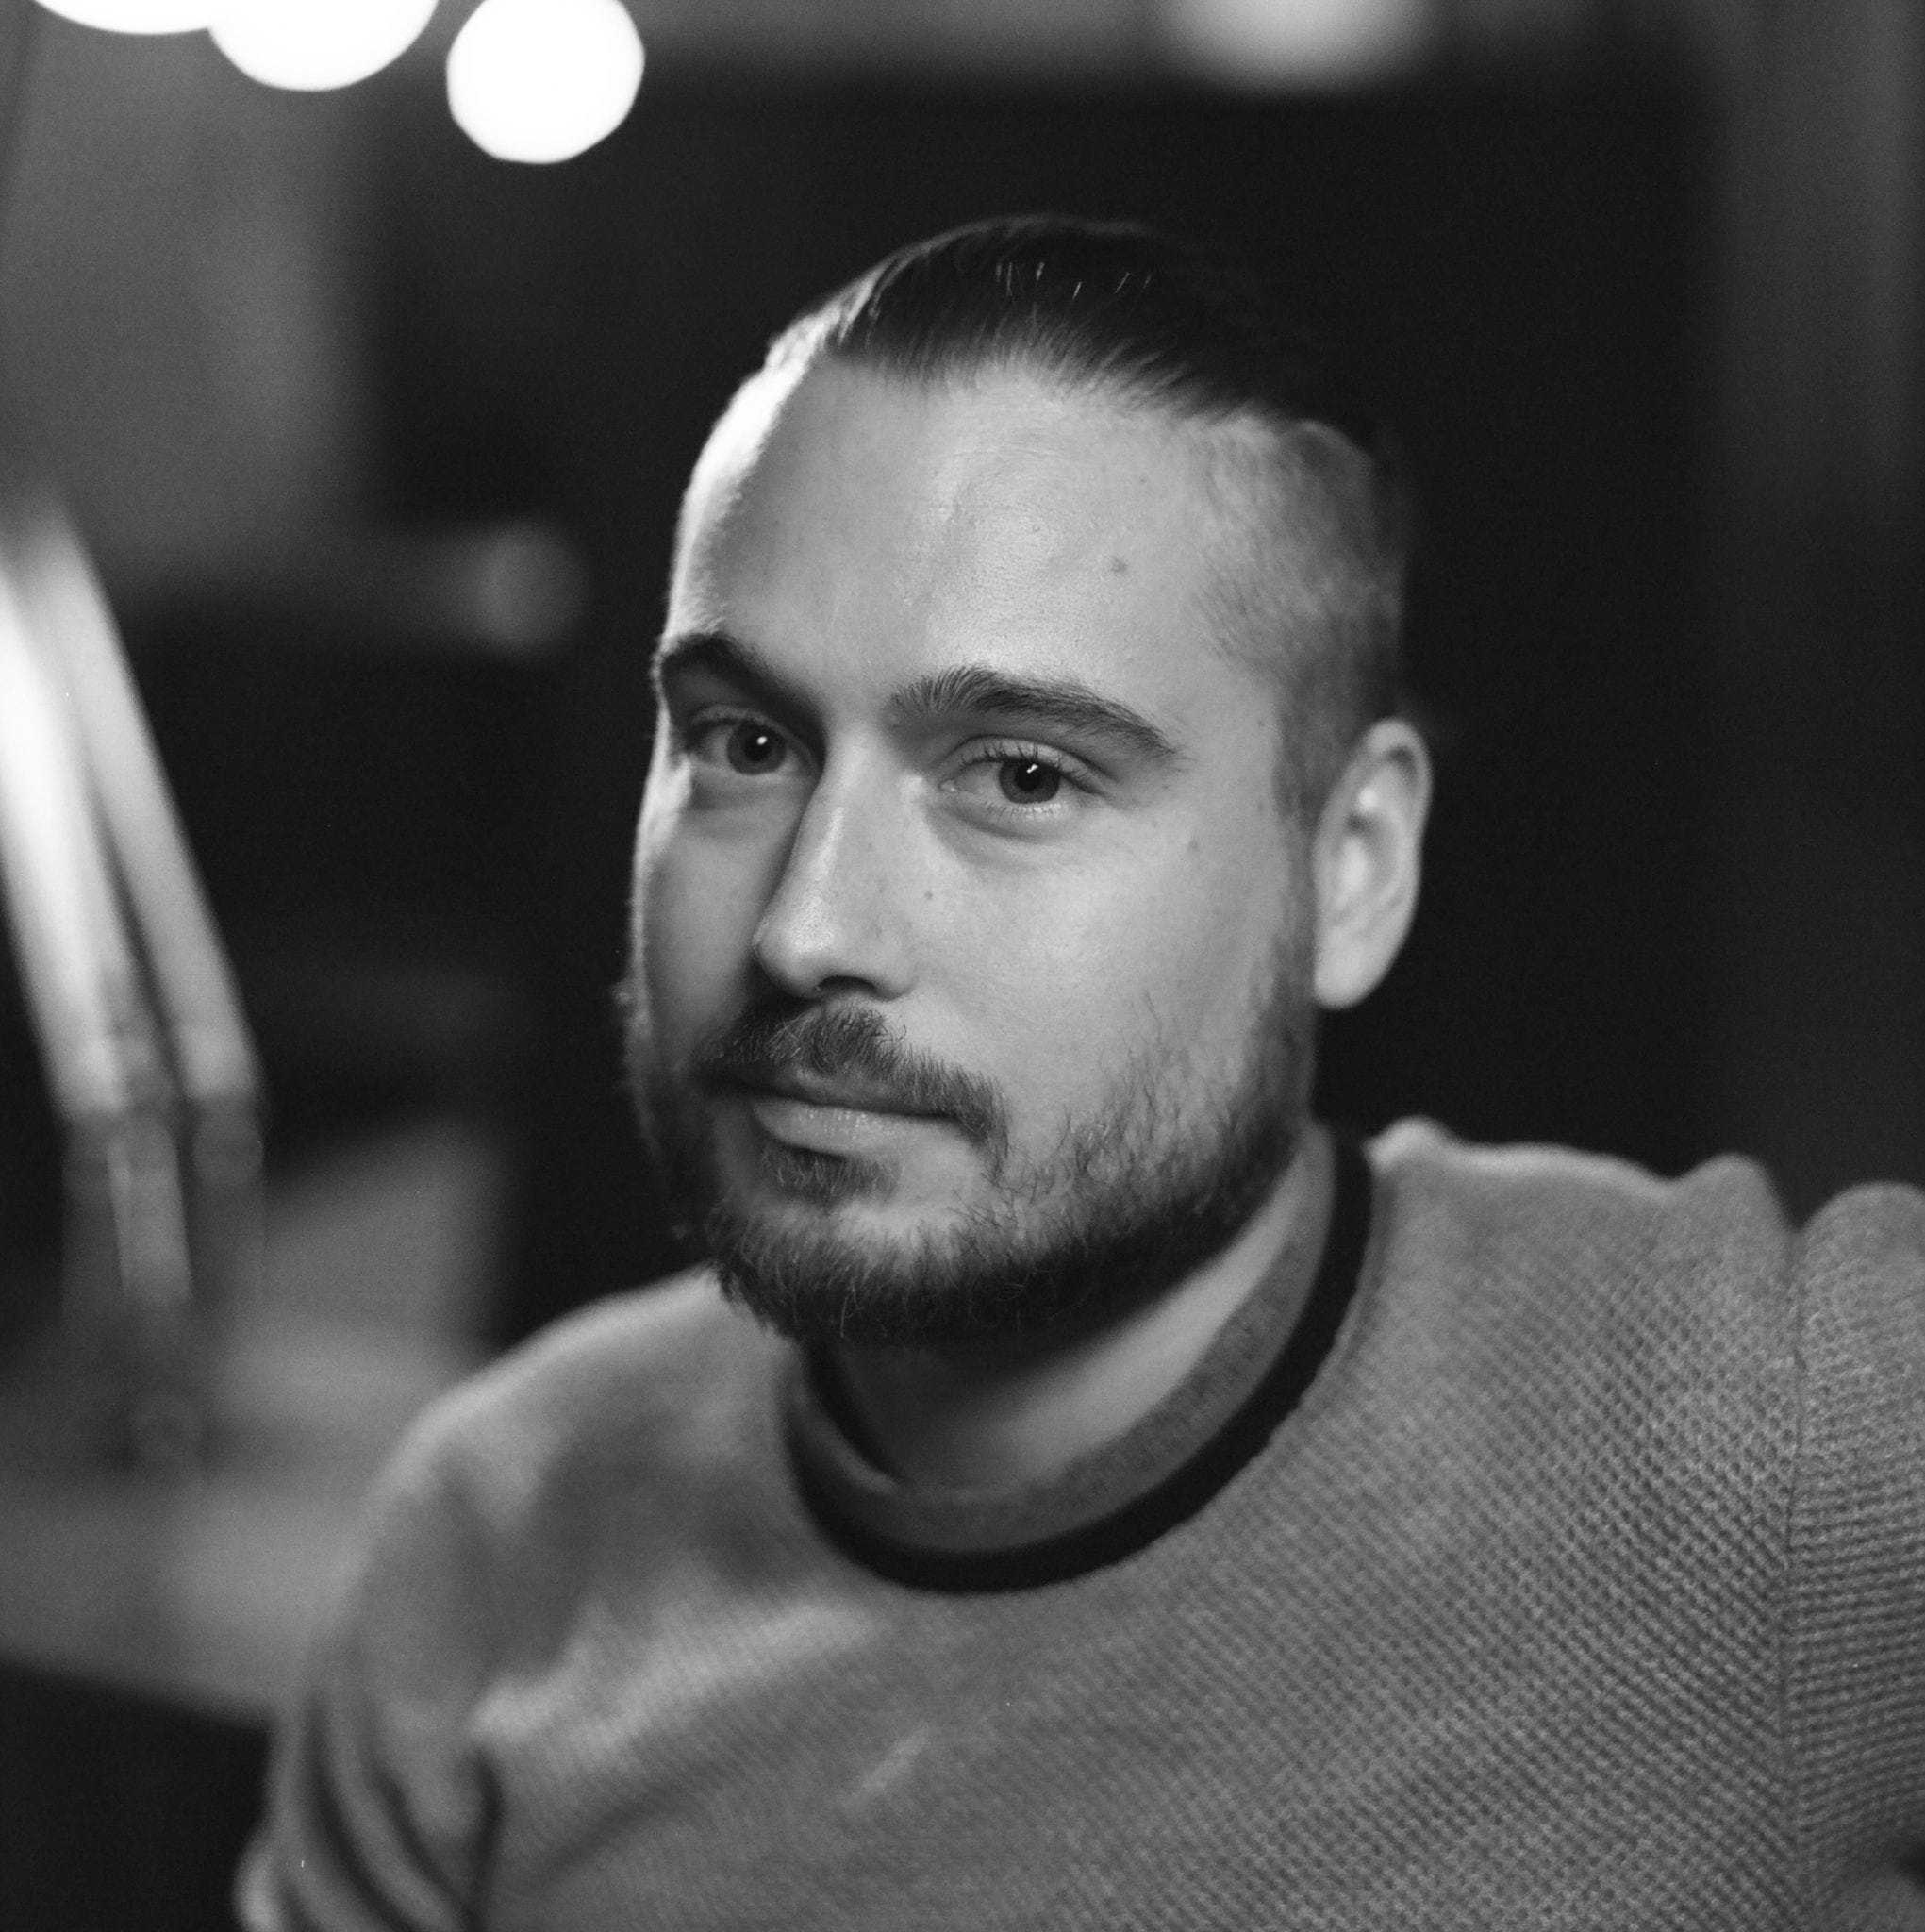 FILM PRODUCTION GRADUATE, TOBY TOMKINS, SPEAKS TO US ABOUT HIS SUCCESSFUL CAREER